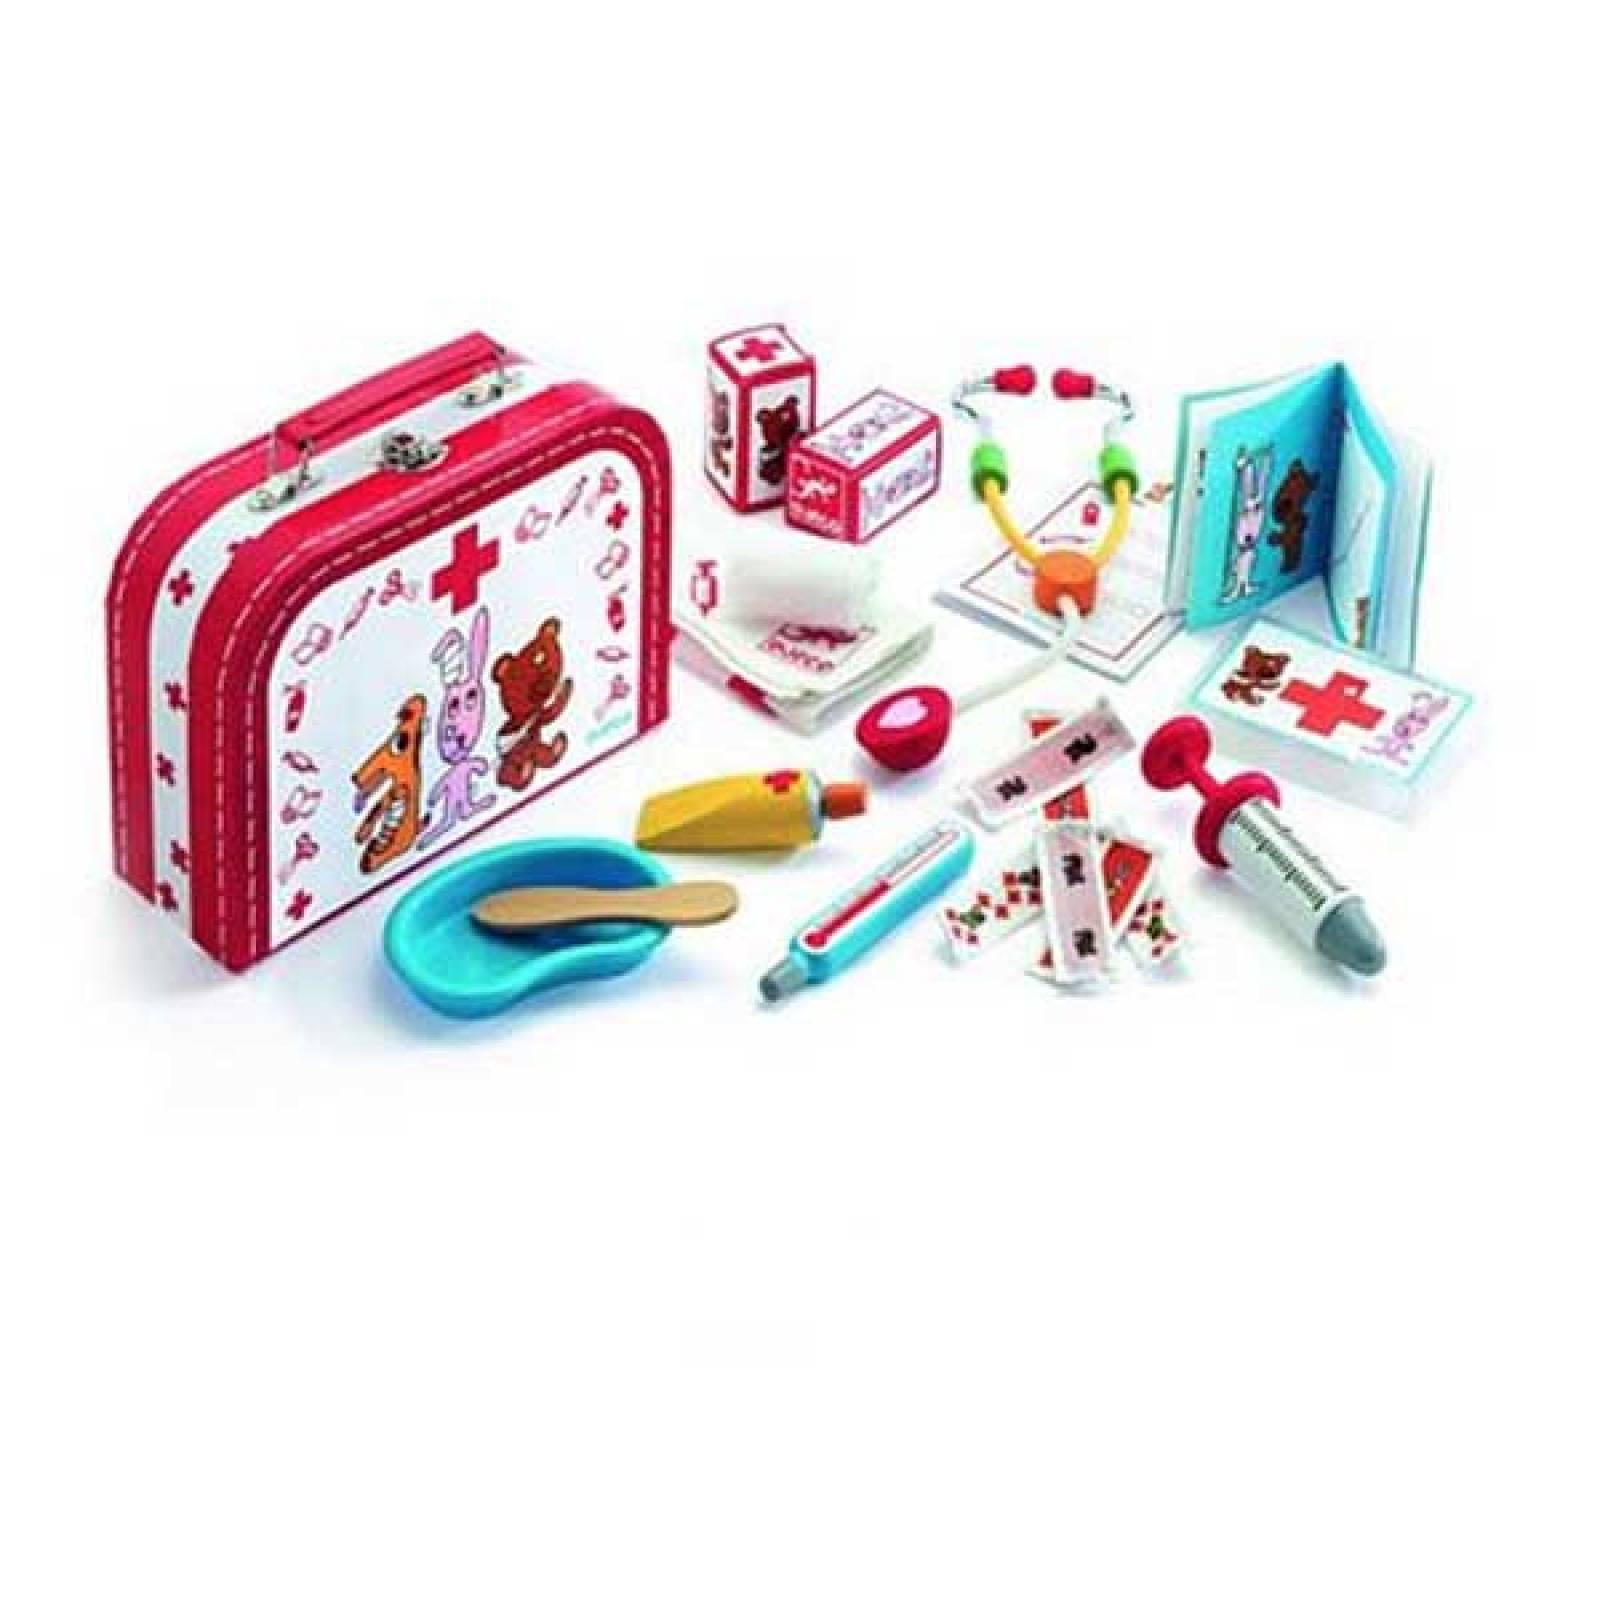 Bobodoudou: Suitcase With Medical Kit For Pets (Vet)